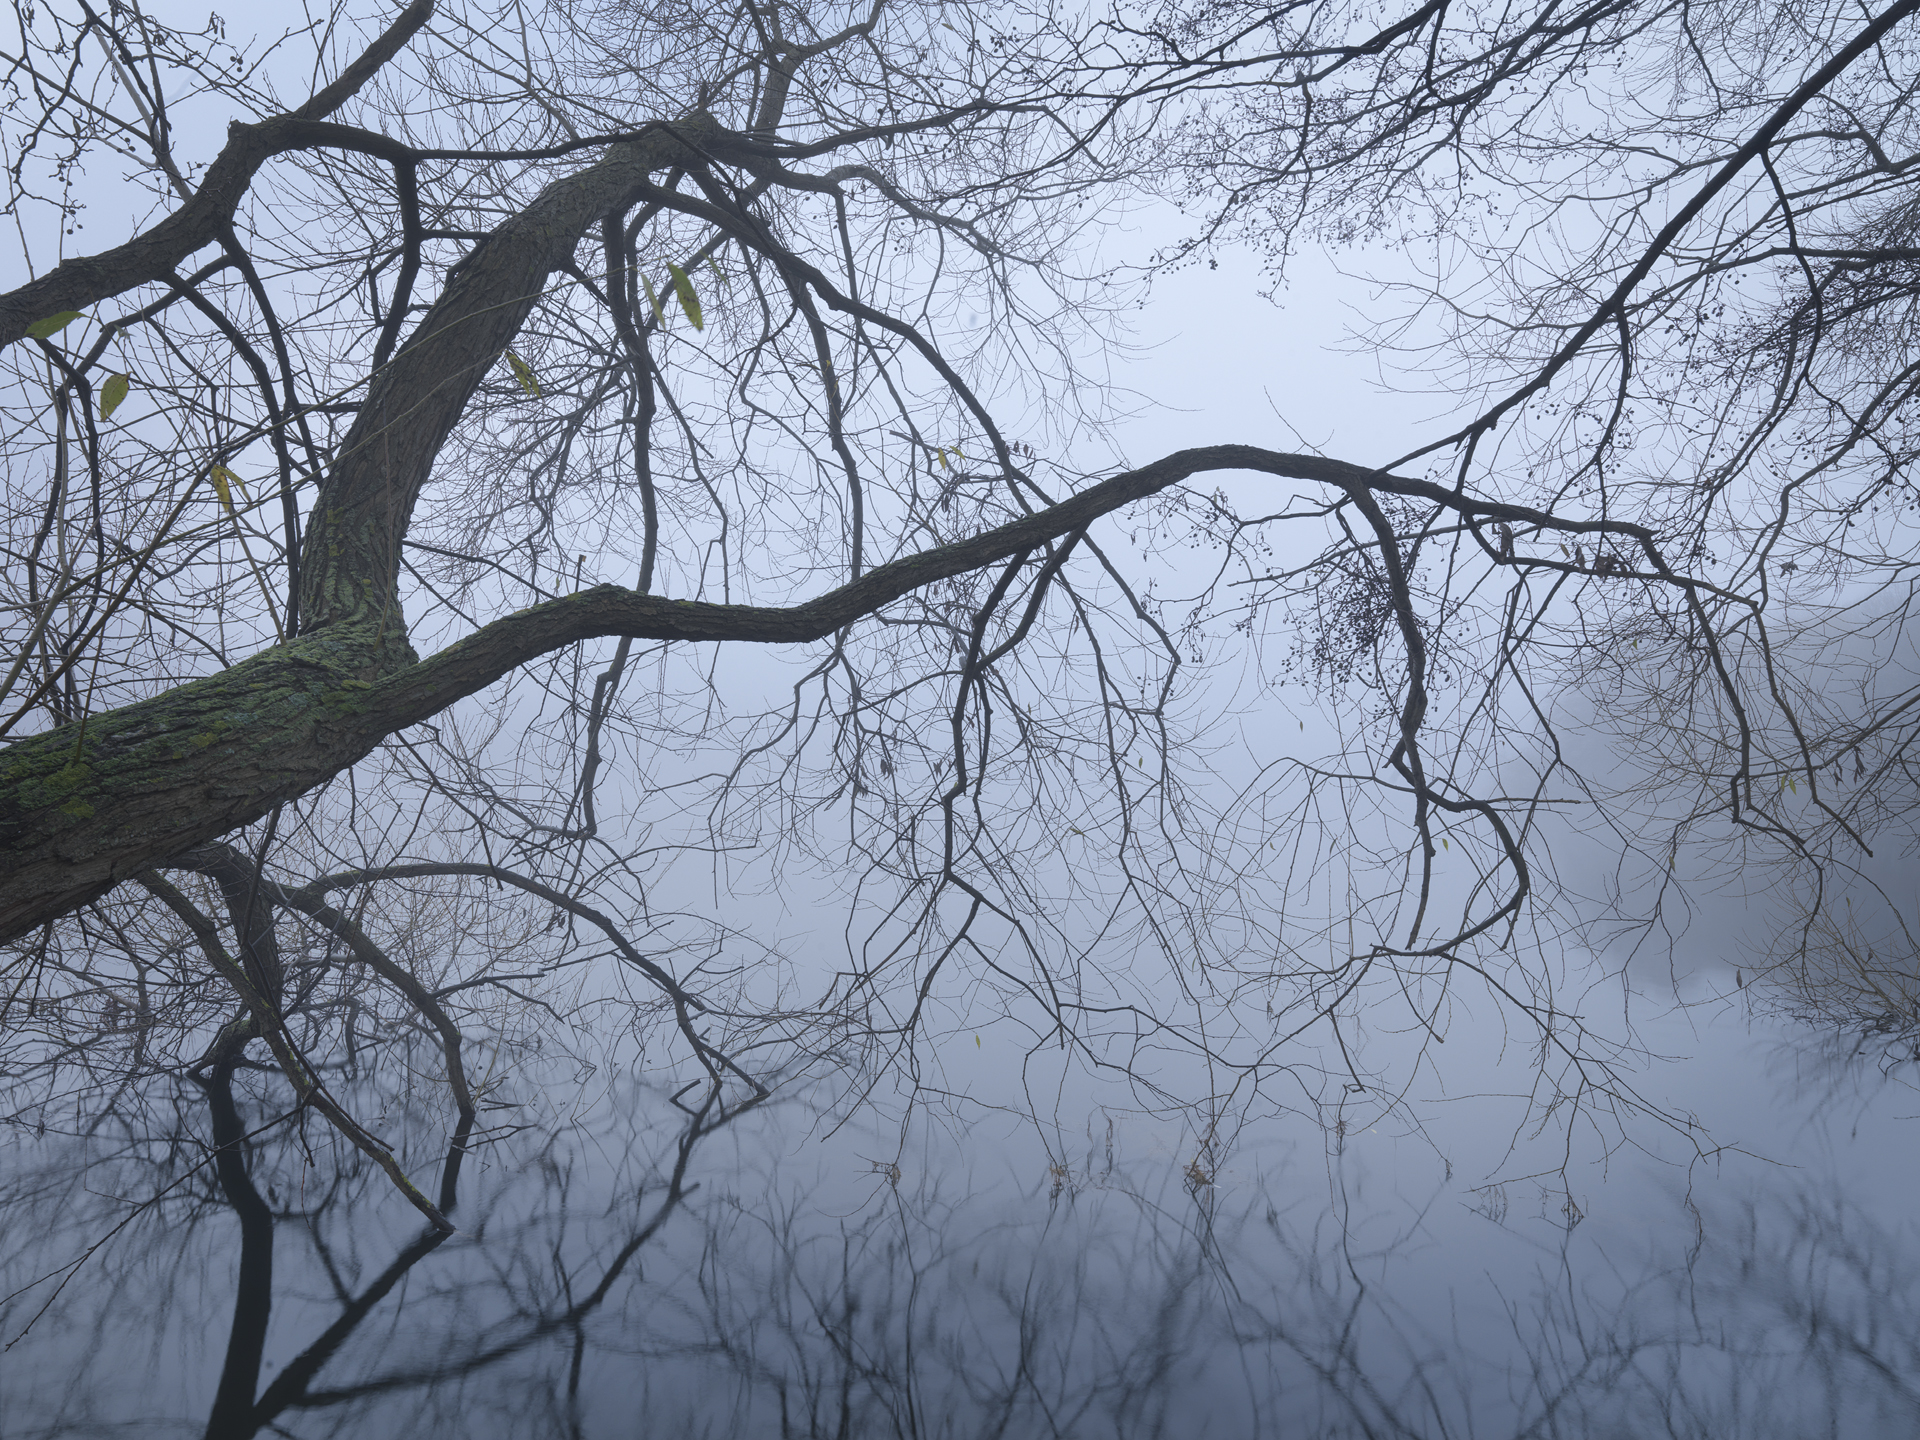 Willow in Mist, Hägersten, Sweden 2014